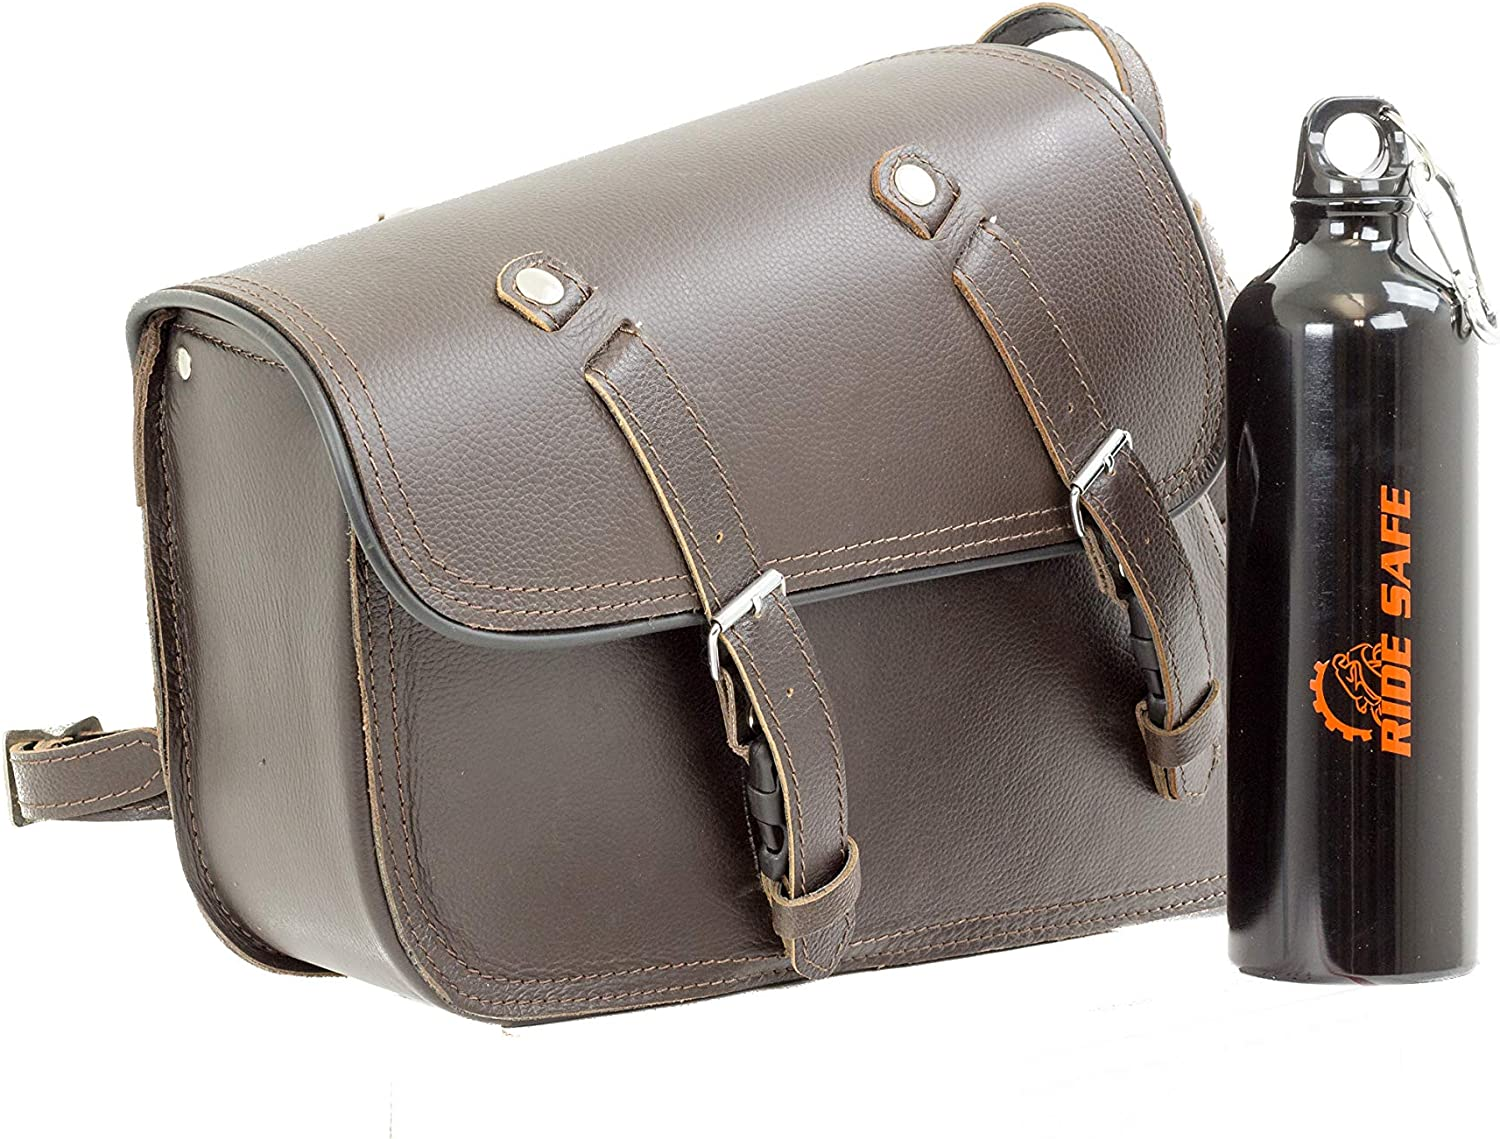 Sturgis Leather Black Swing Arm Side Solo Bag for Motorcycles with Bottle Holder